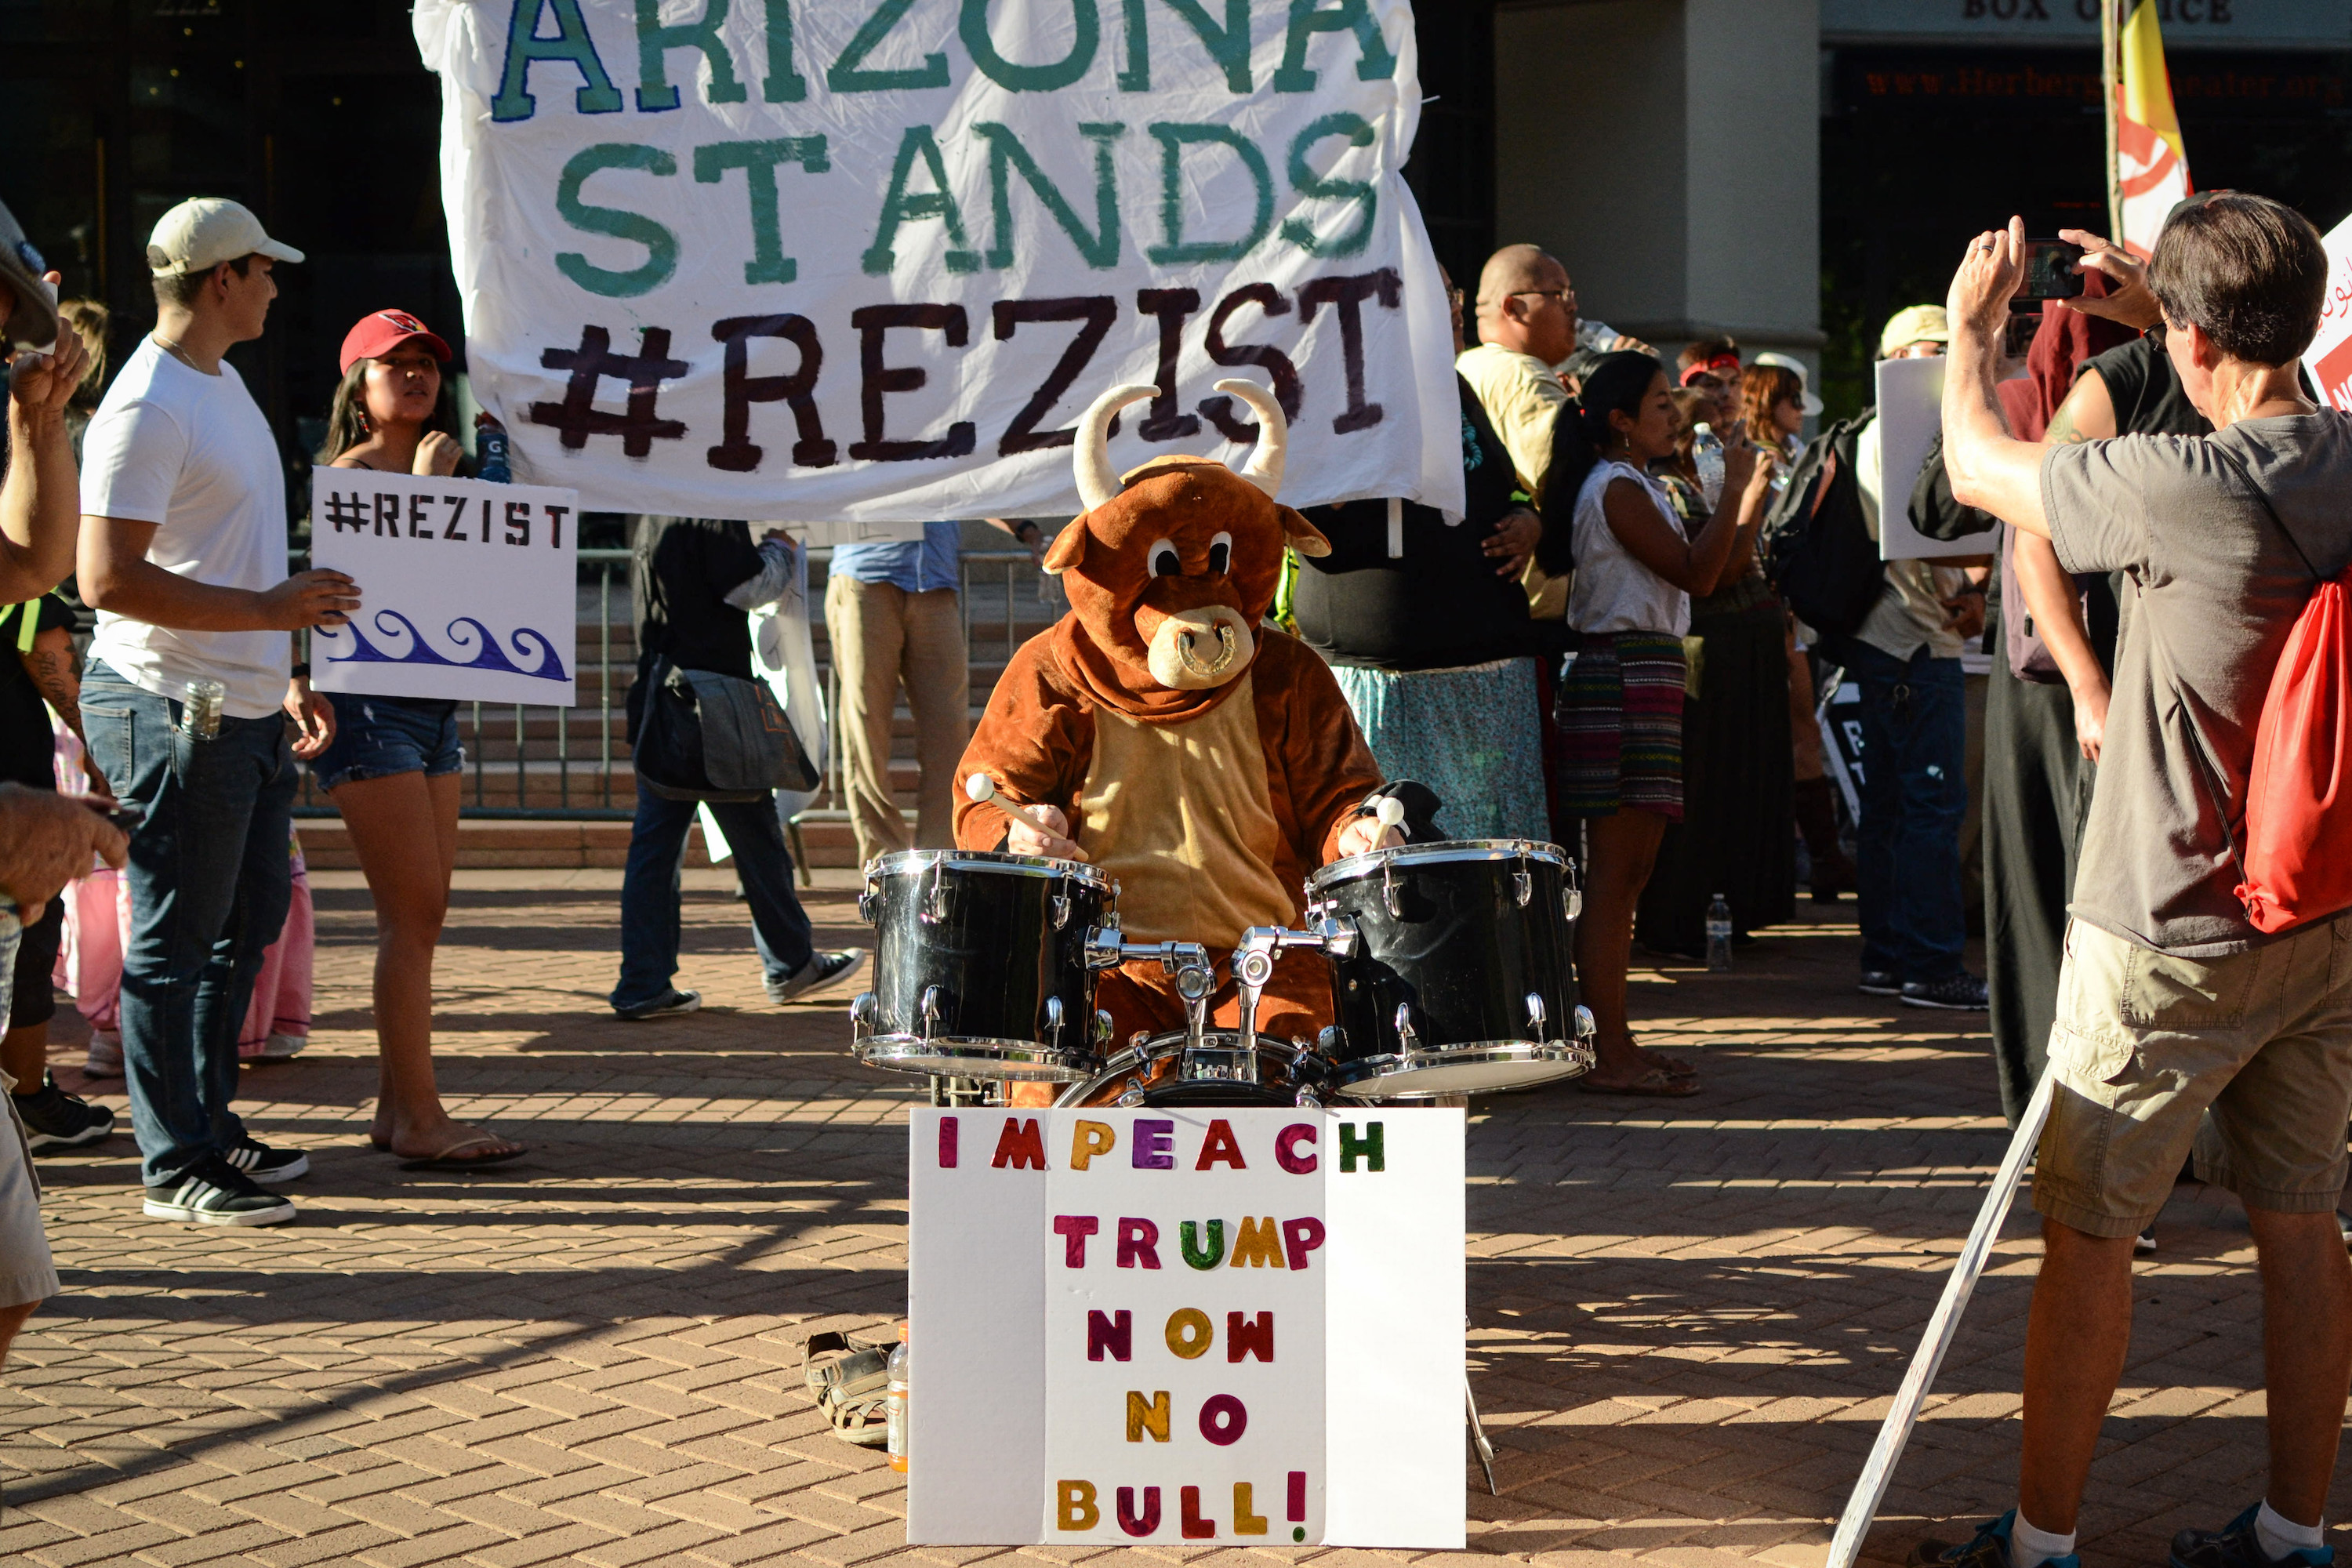 Cronkite News: Police face allegations of brutality at Donald Trump rally in Arizona